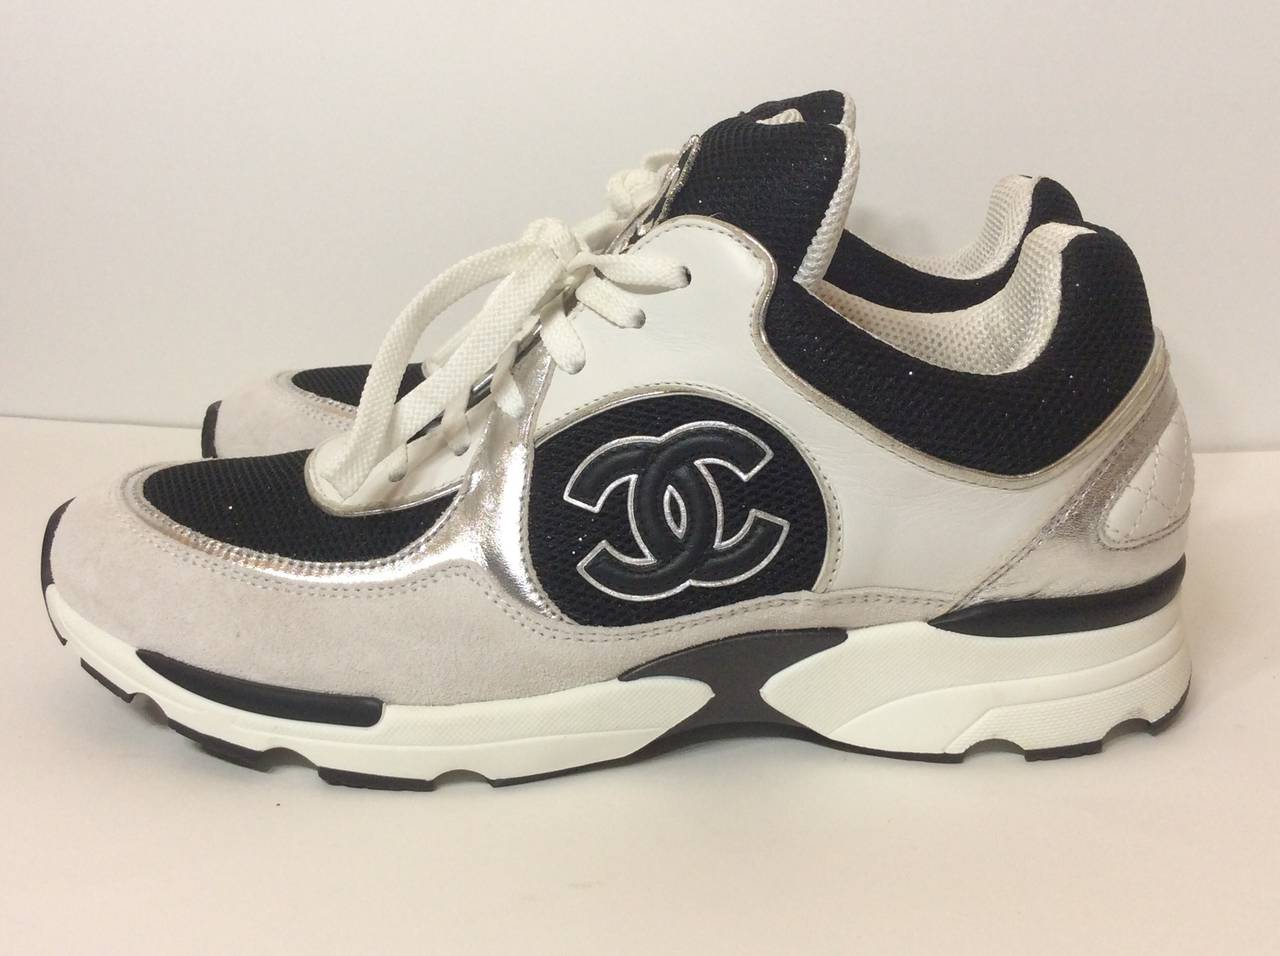 Chanel Sneakers Price 2015 Chanel 2015 Sneakers Sold